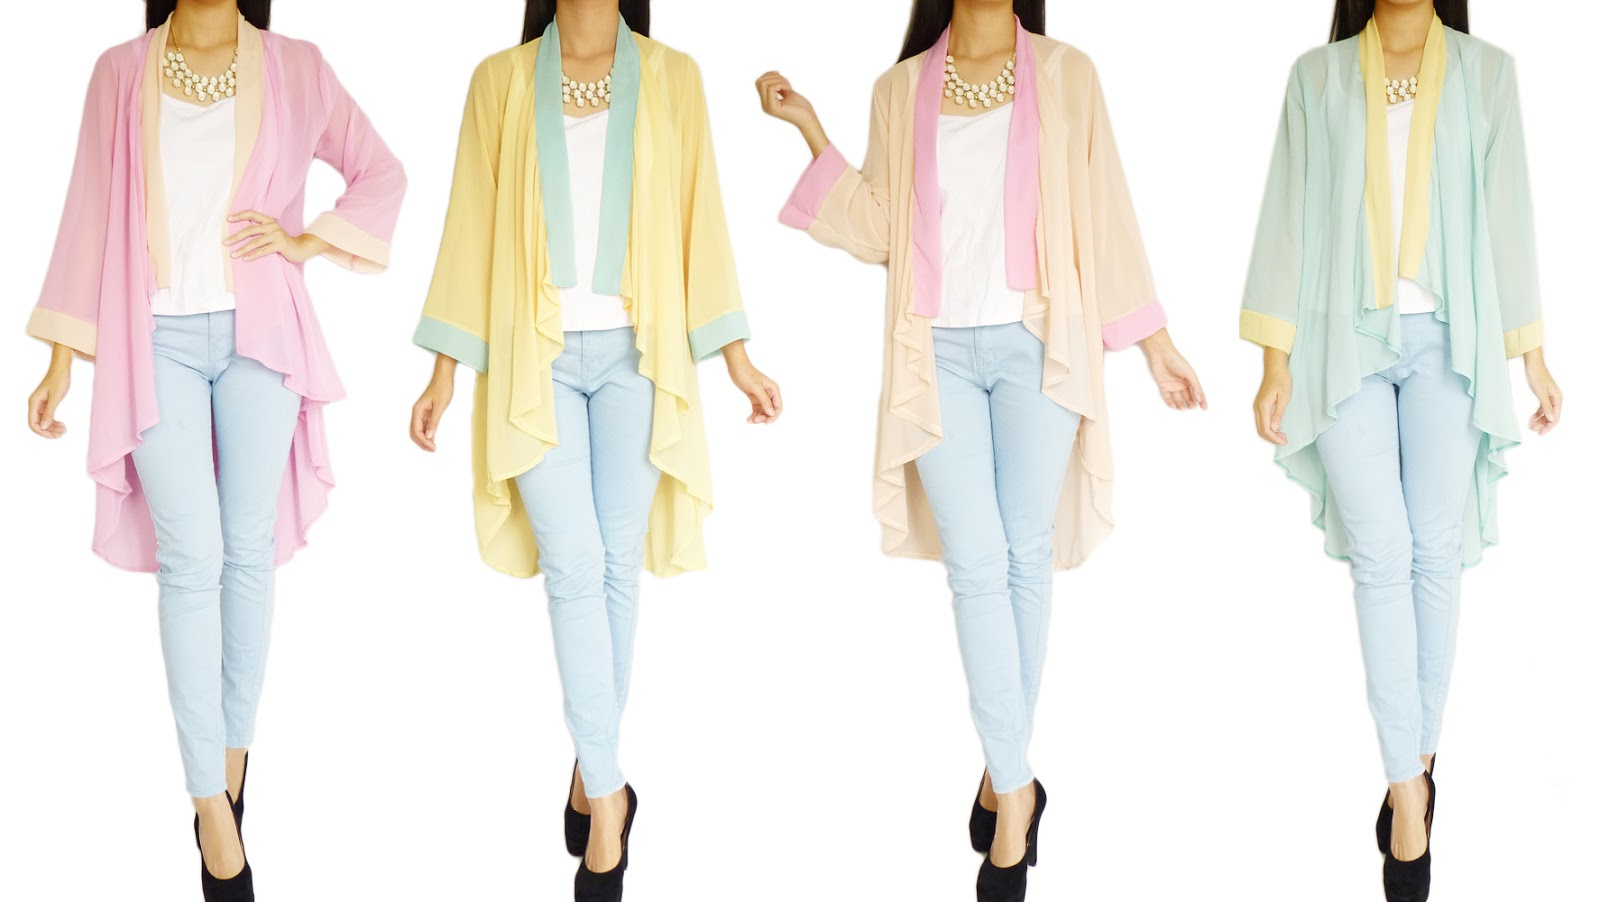 Cardigan Sale Online Malaysia - Cardigan With Buttons